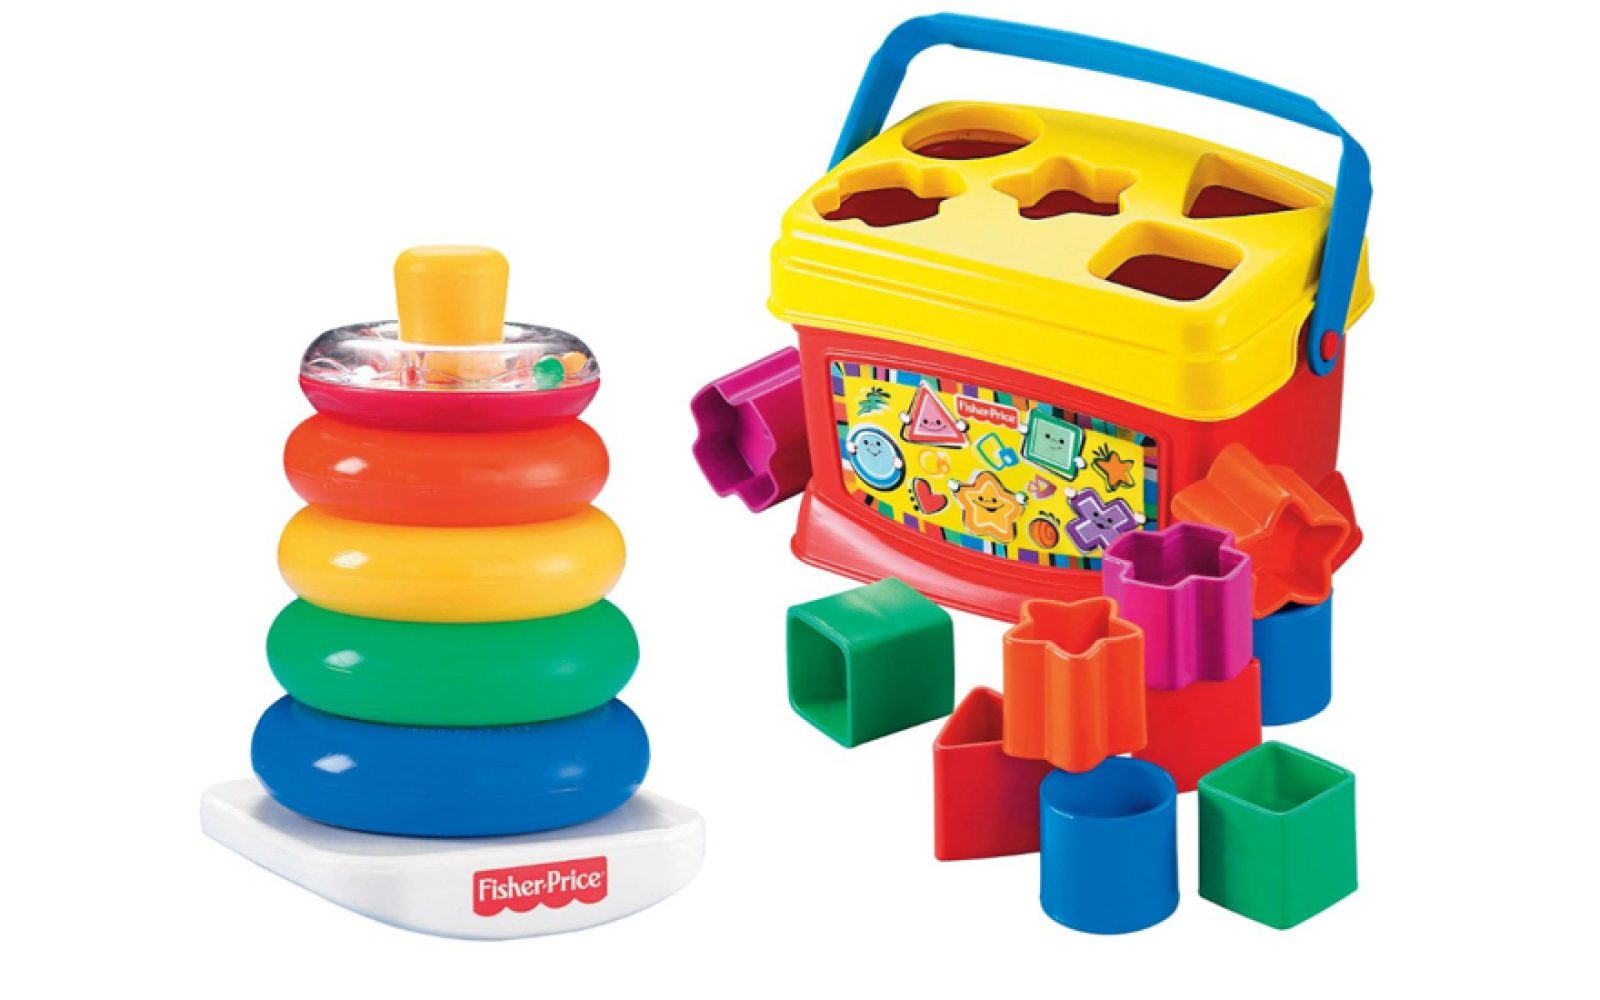 Fisher Price Toys Babys First Blocks Plus Brilliant Basics Rock A Laugh Learn Smart Phone Stack For 849 8 More